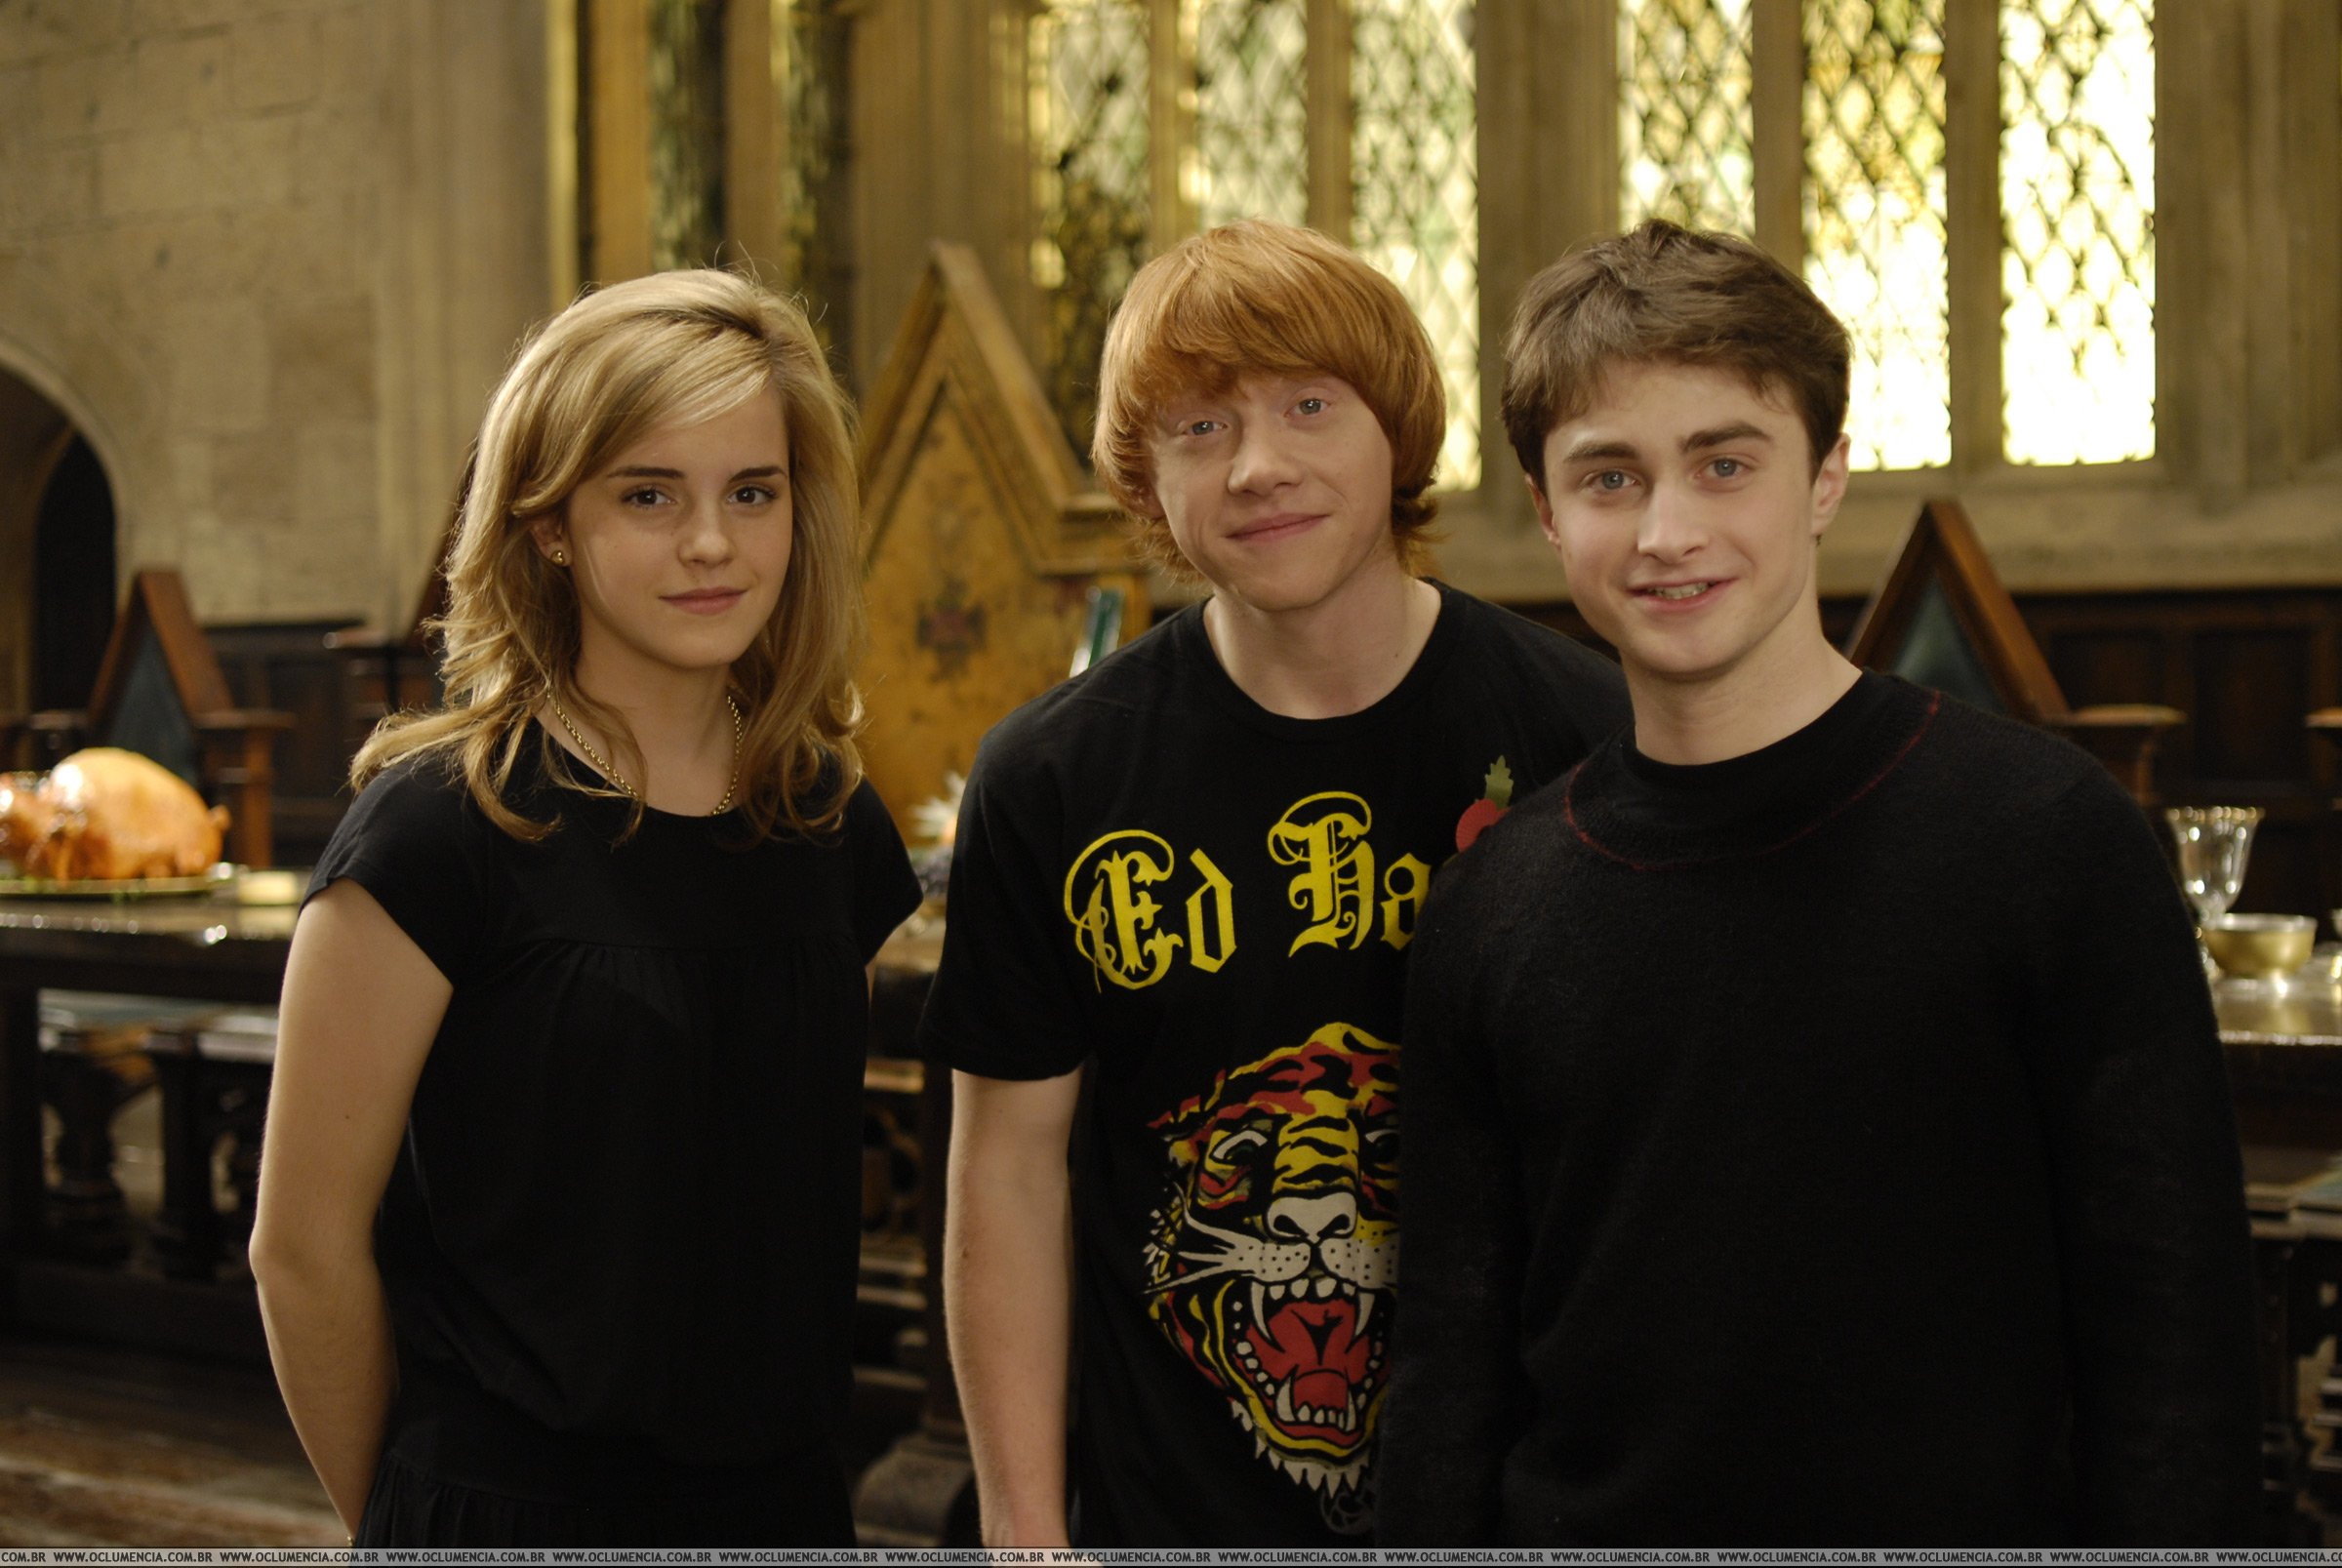 Best Wallpaper Harry Potter Friend - 192fd41c-0376-417e-8f26-abee52fc38df  Perfect Image Reference_553770.jpg